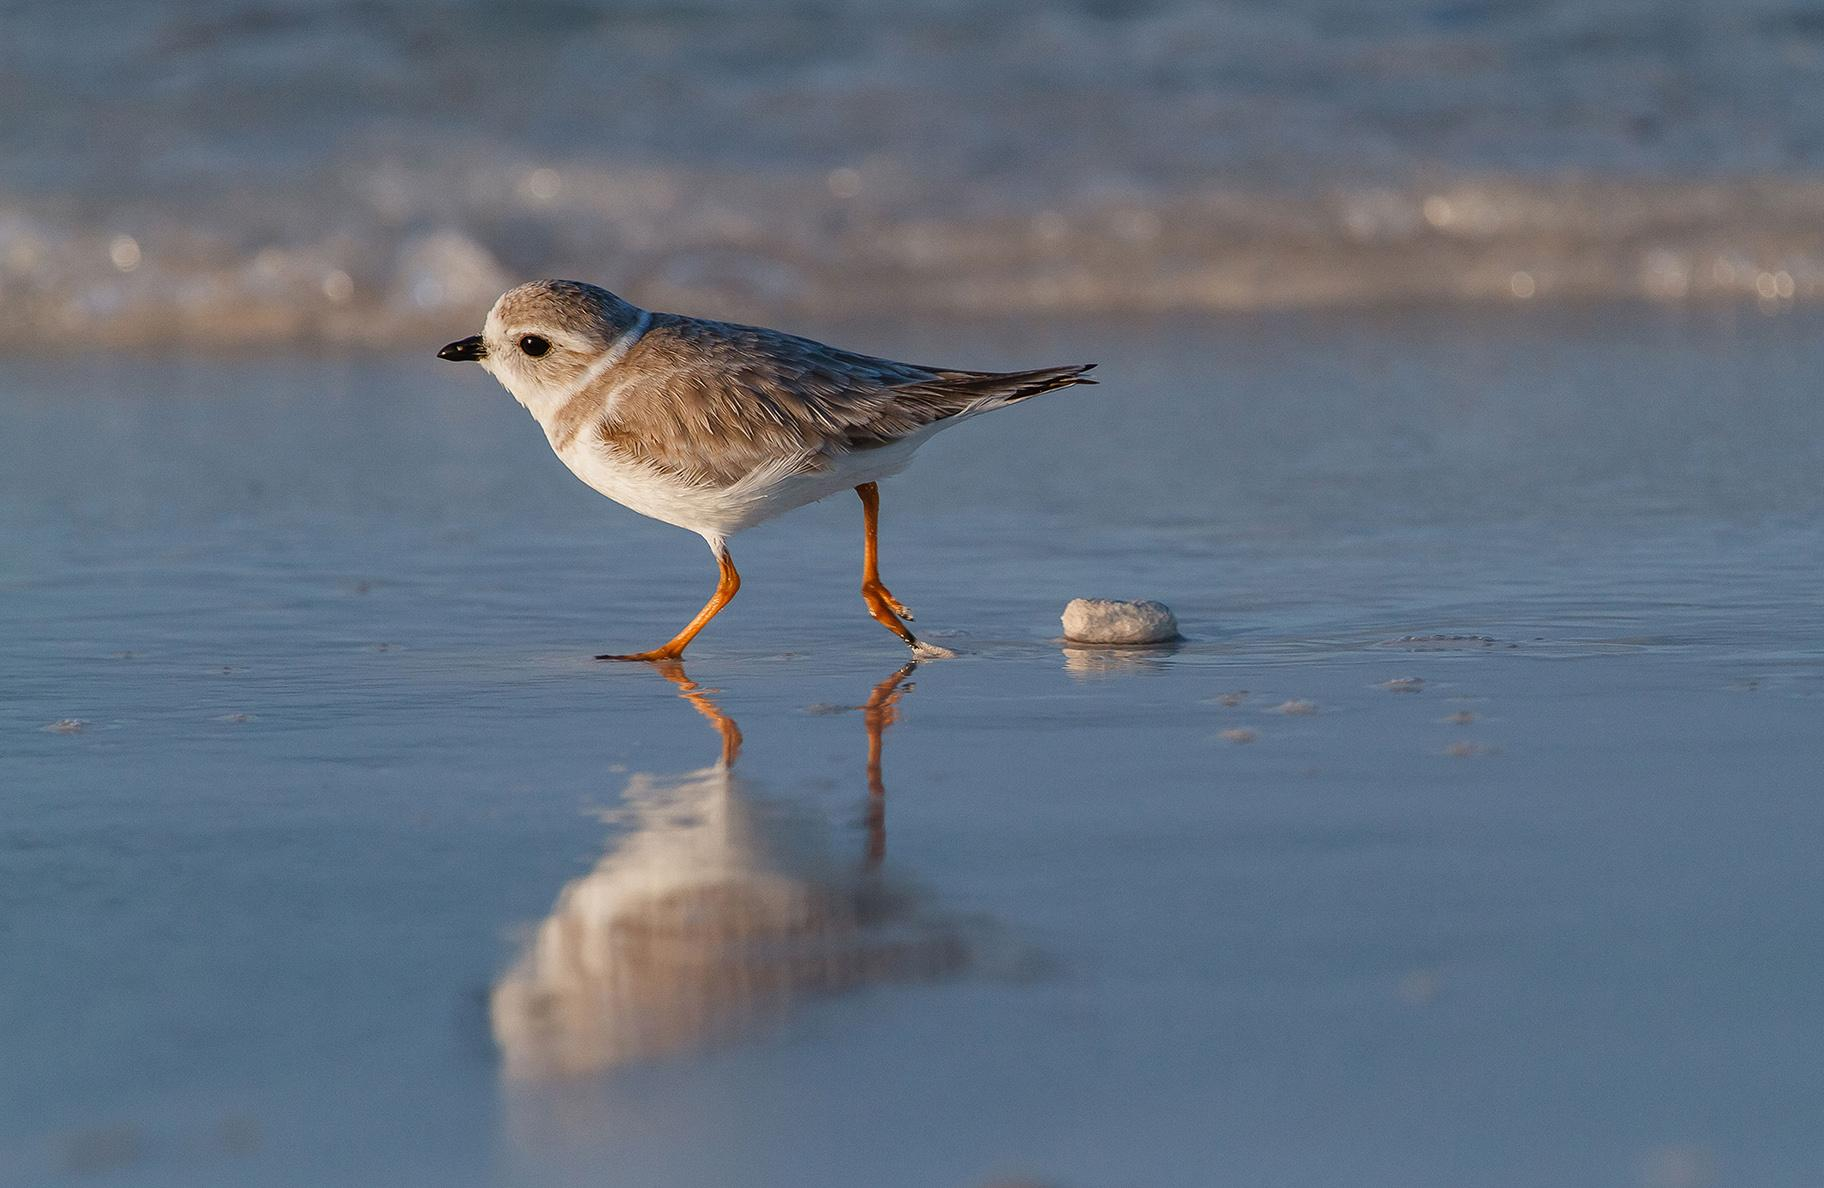 A piping plover (Lorraine Minns / Audubon Photography Awards)